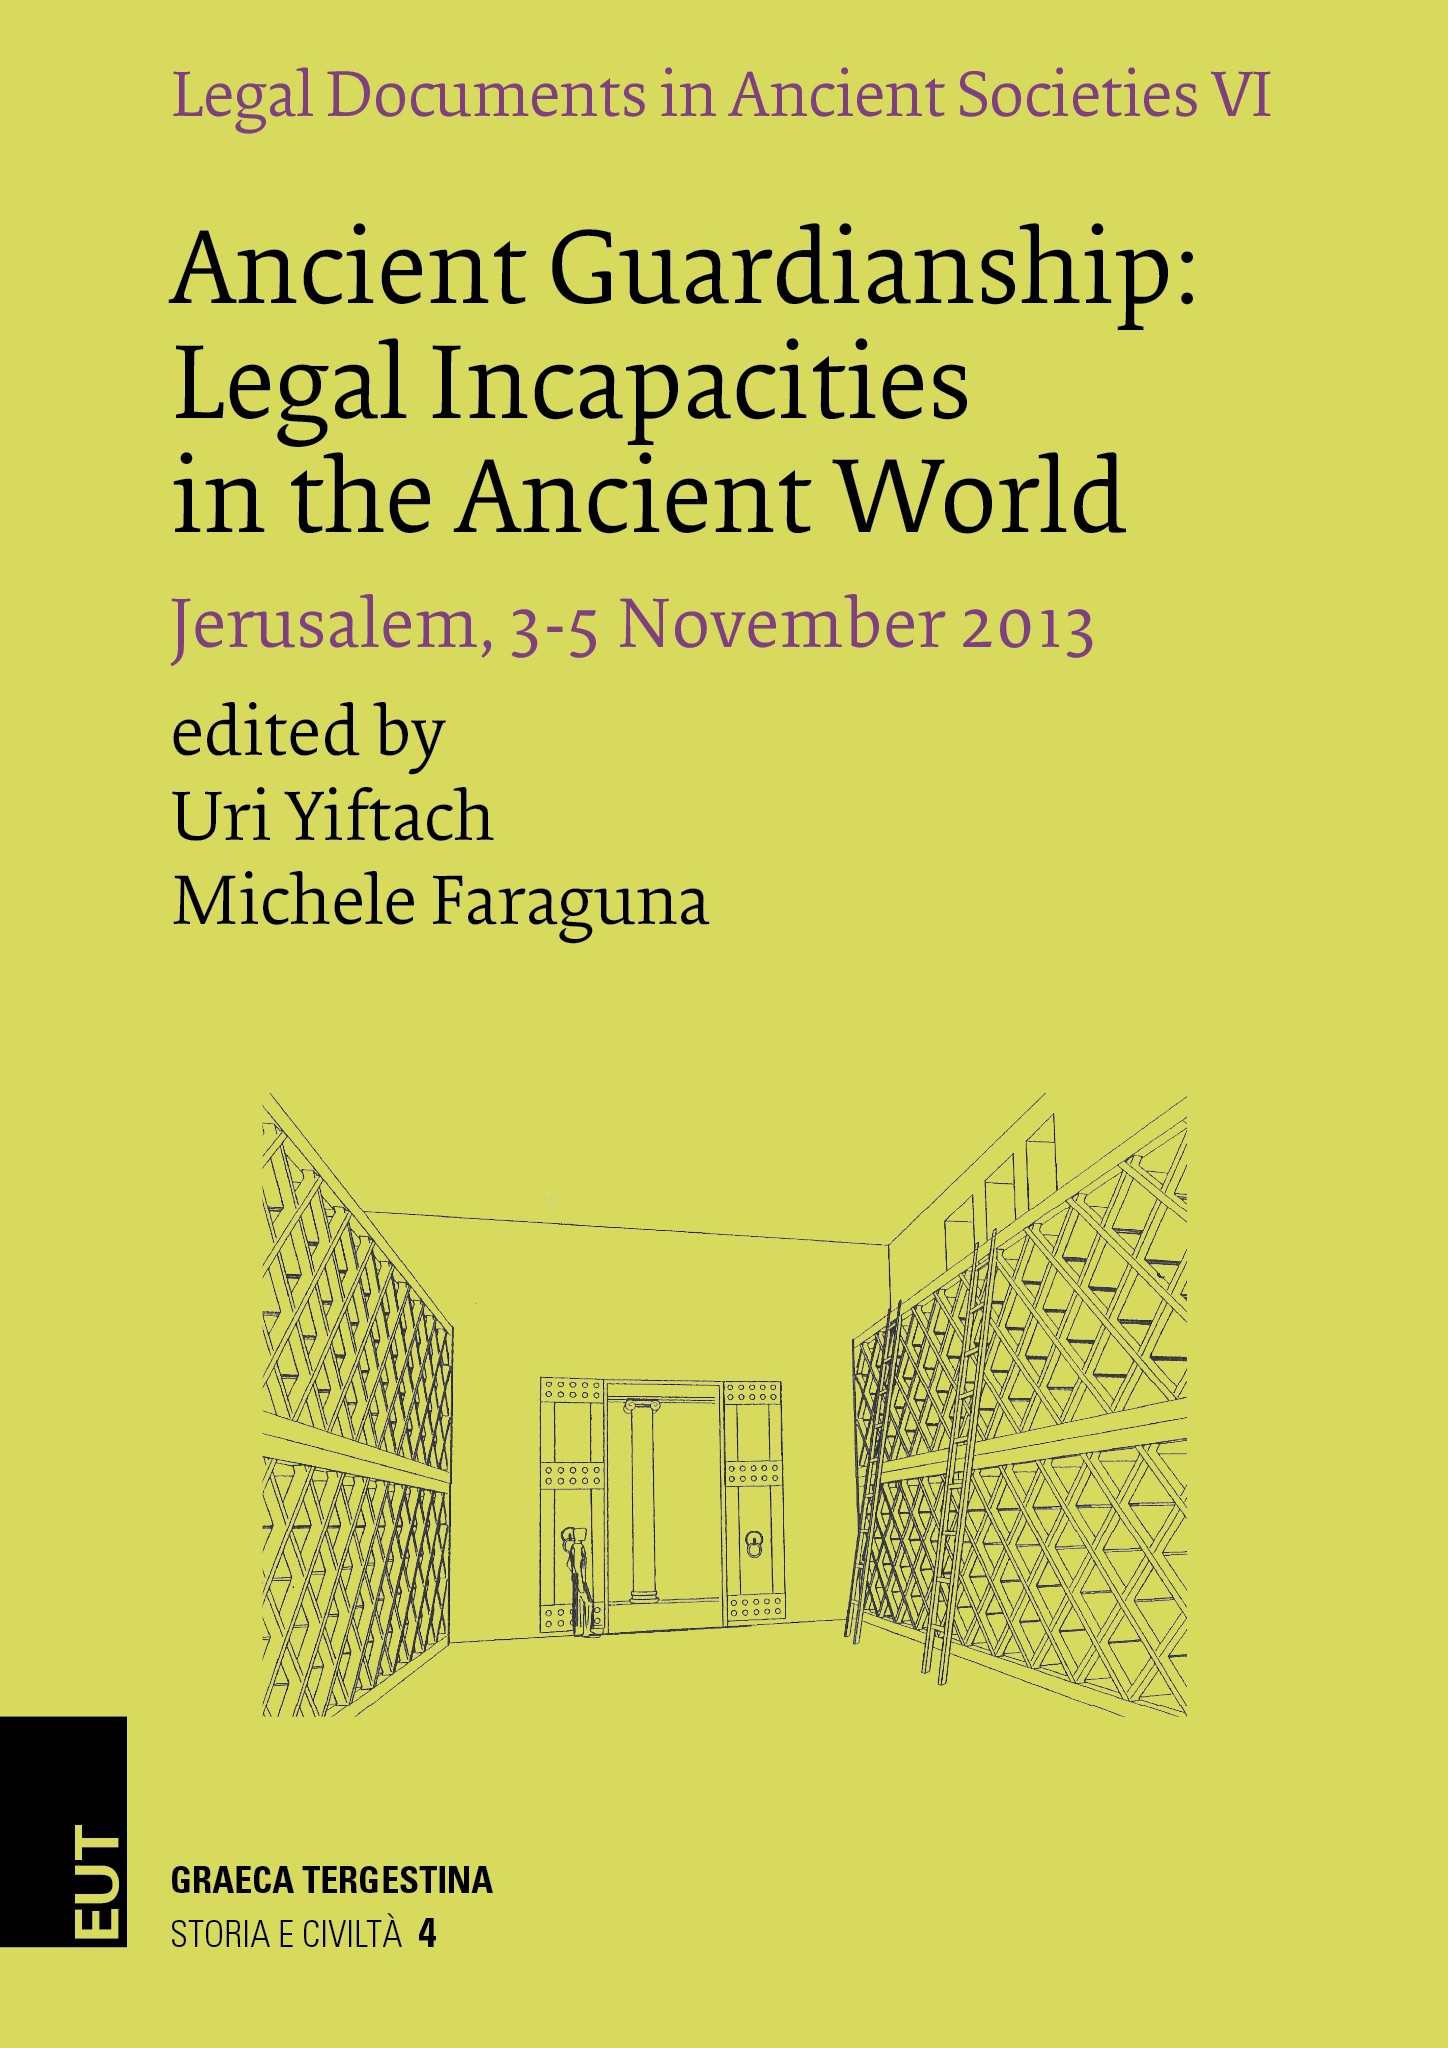 Legal Documents in Ancient Societies VI. Ancient Guardianship: Legal Incapacities in the Ancient World